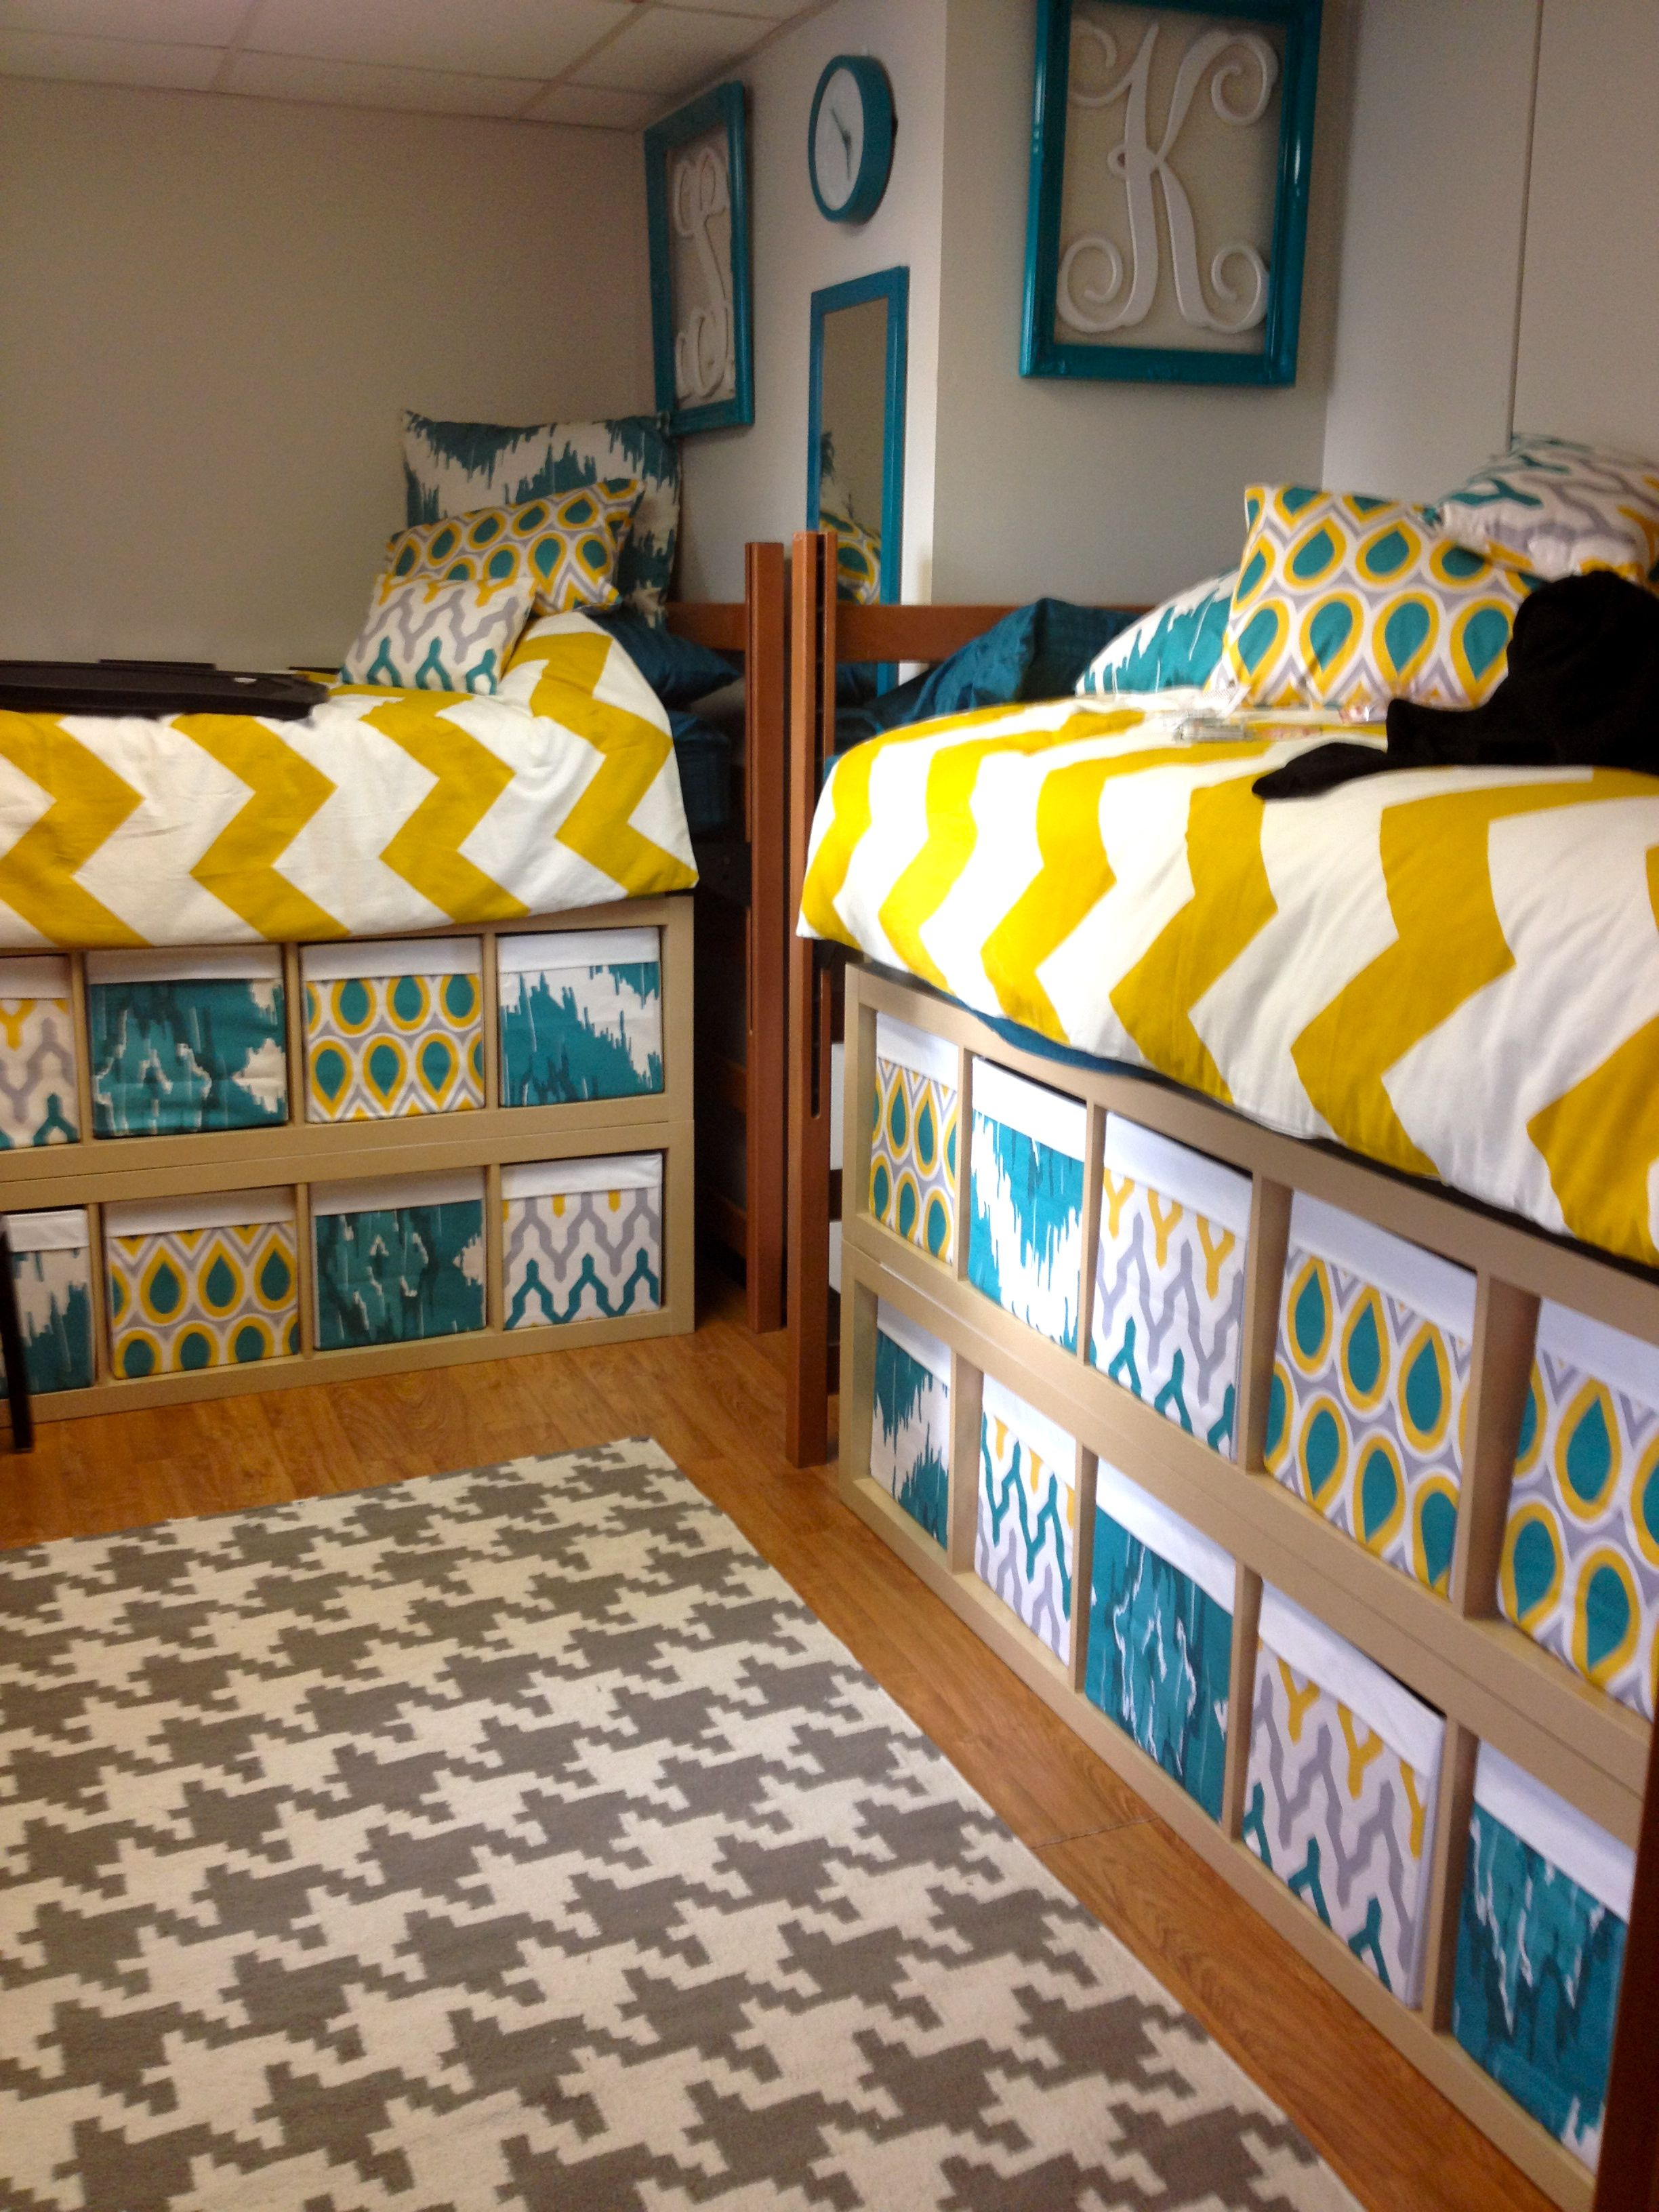 17 Smart  Simple Ways To Decorate Your Dorm Room  Dorm Dorm Impressive Simple Ways To Decorate Your Bedroom 2018